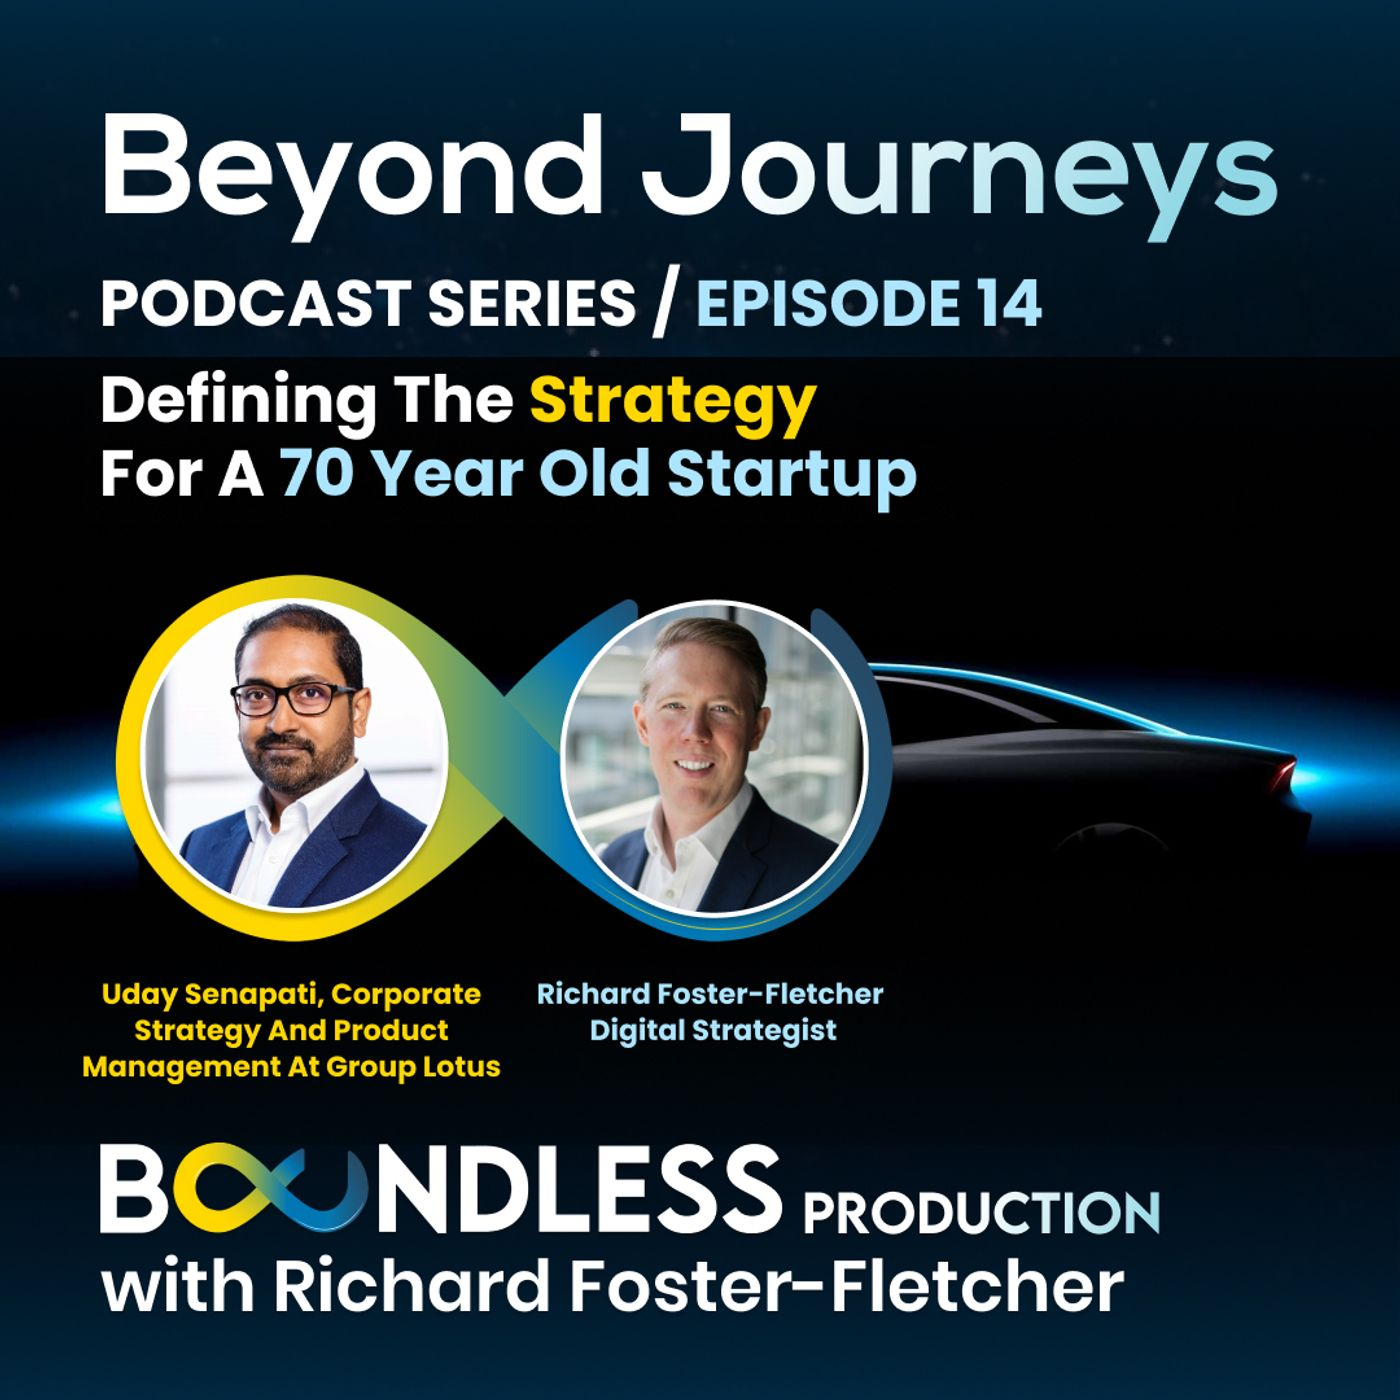 EP14 Beyond Journeys: Uday Senapati, Corporate Strategy and Product Management at Group Lotus: Defining the strategy for a 70 year old Start